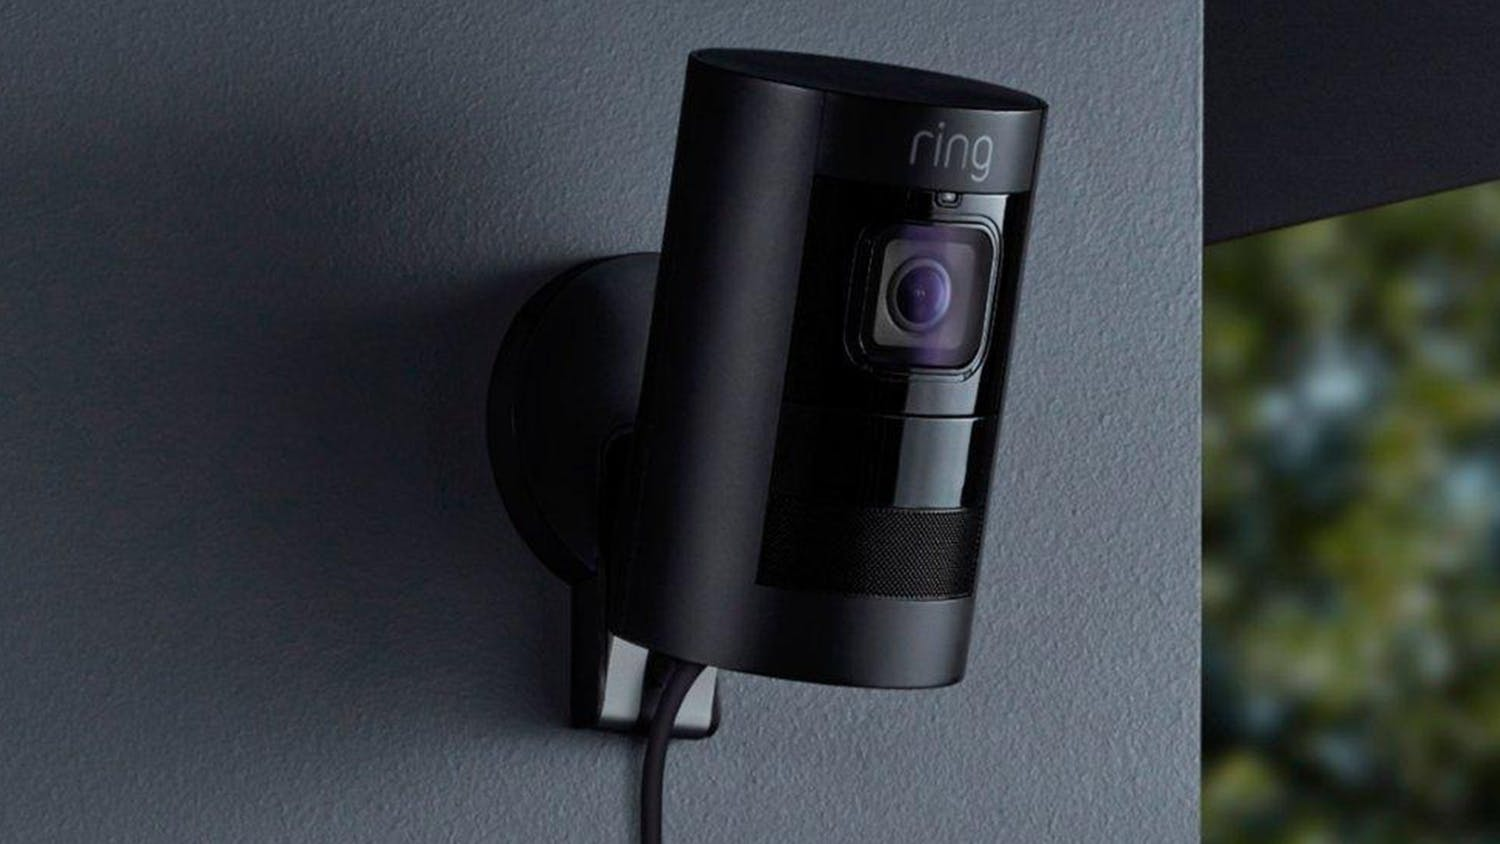 Ring Stick Up Camera Elite - Black